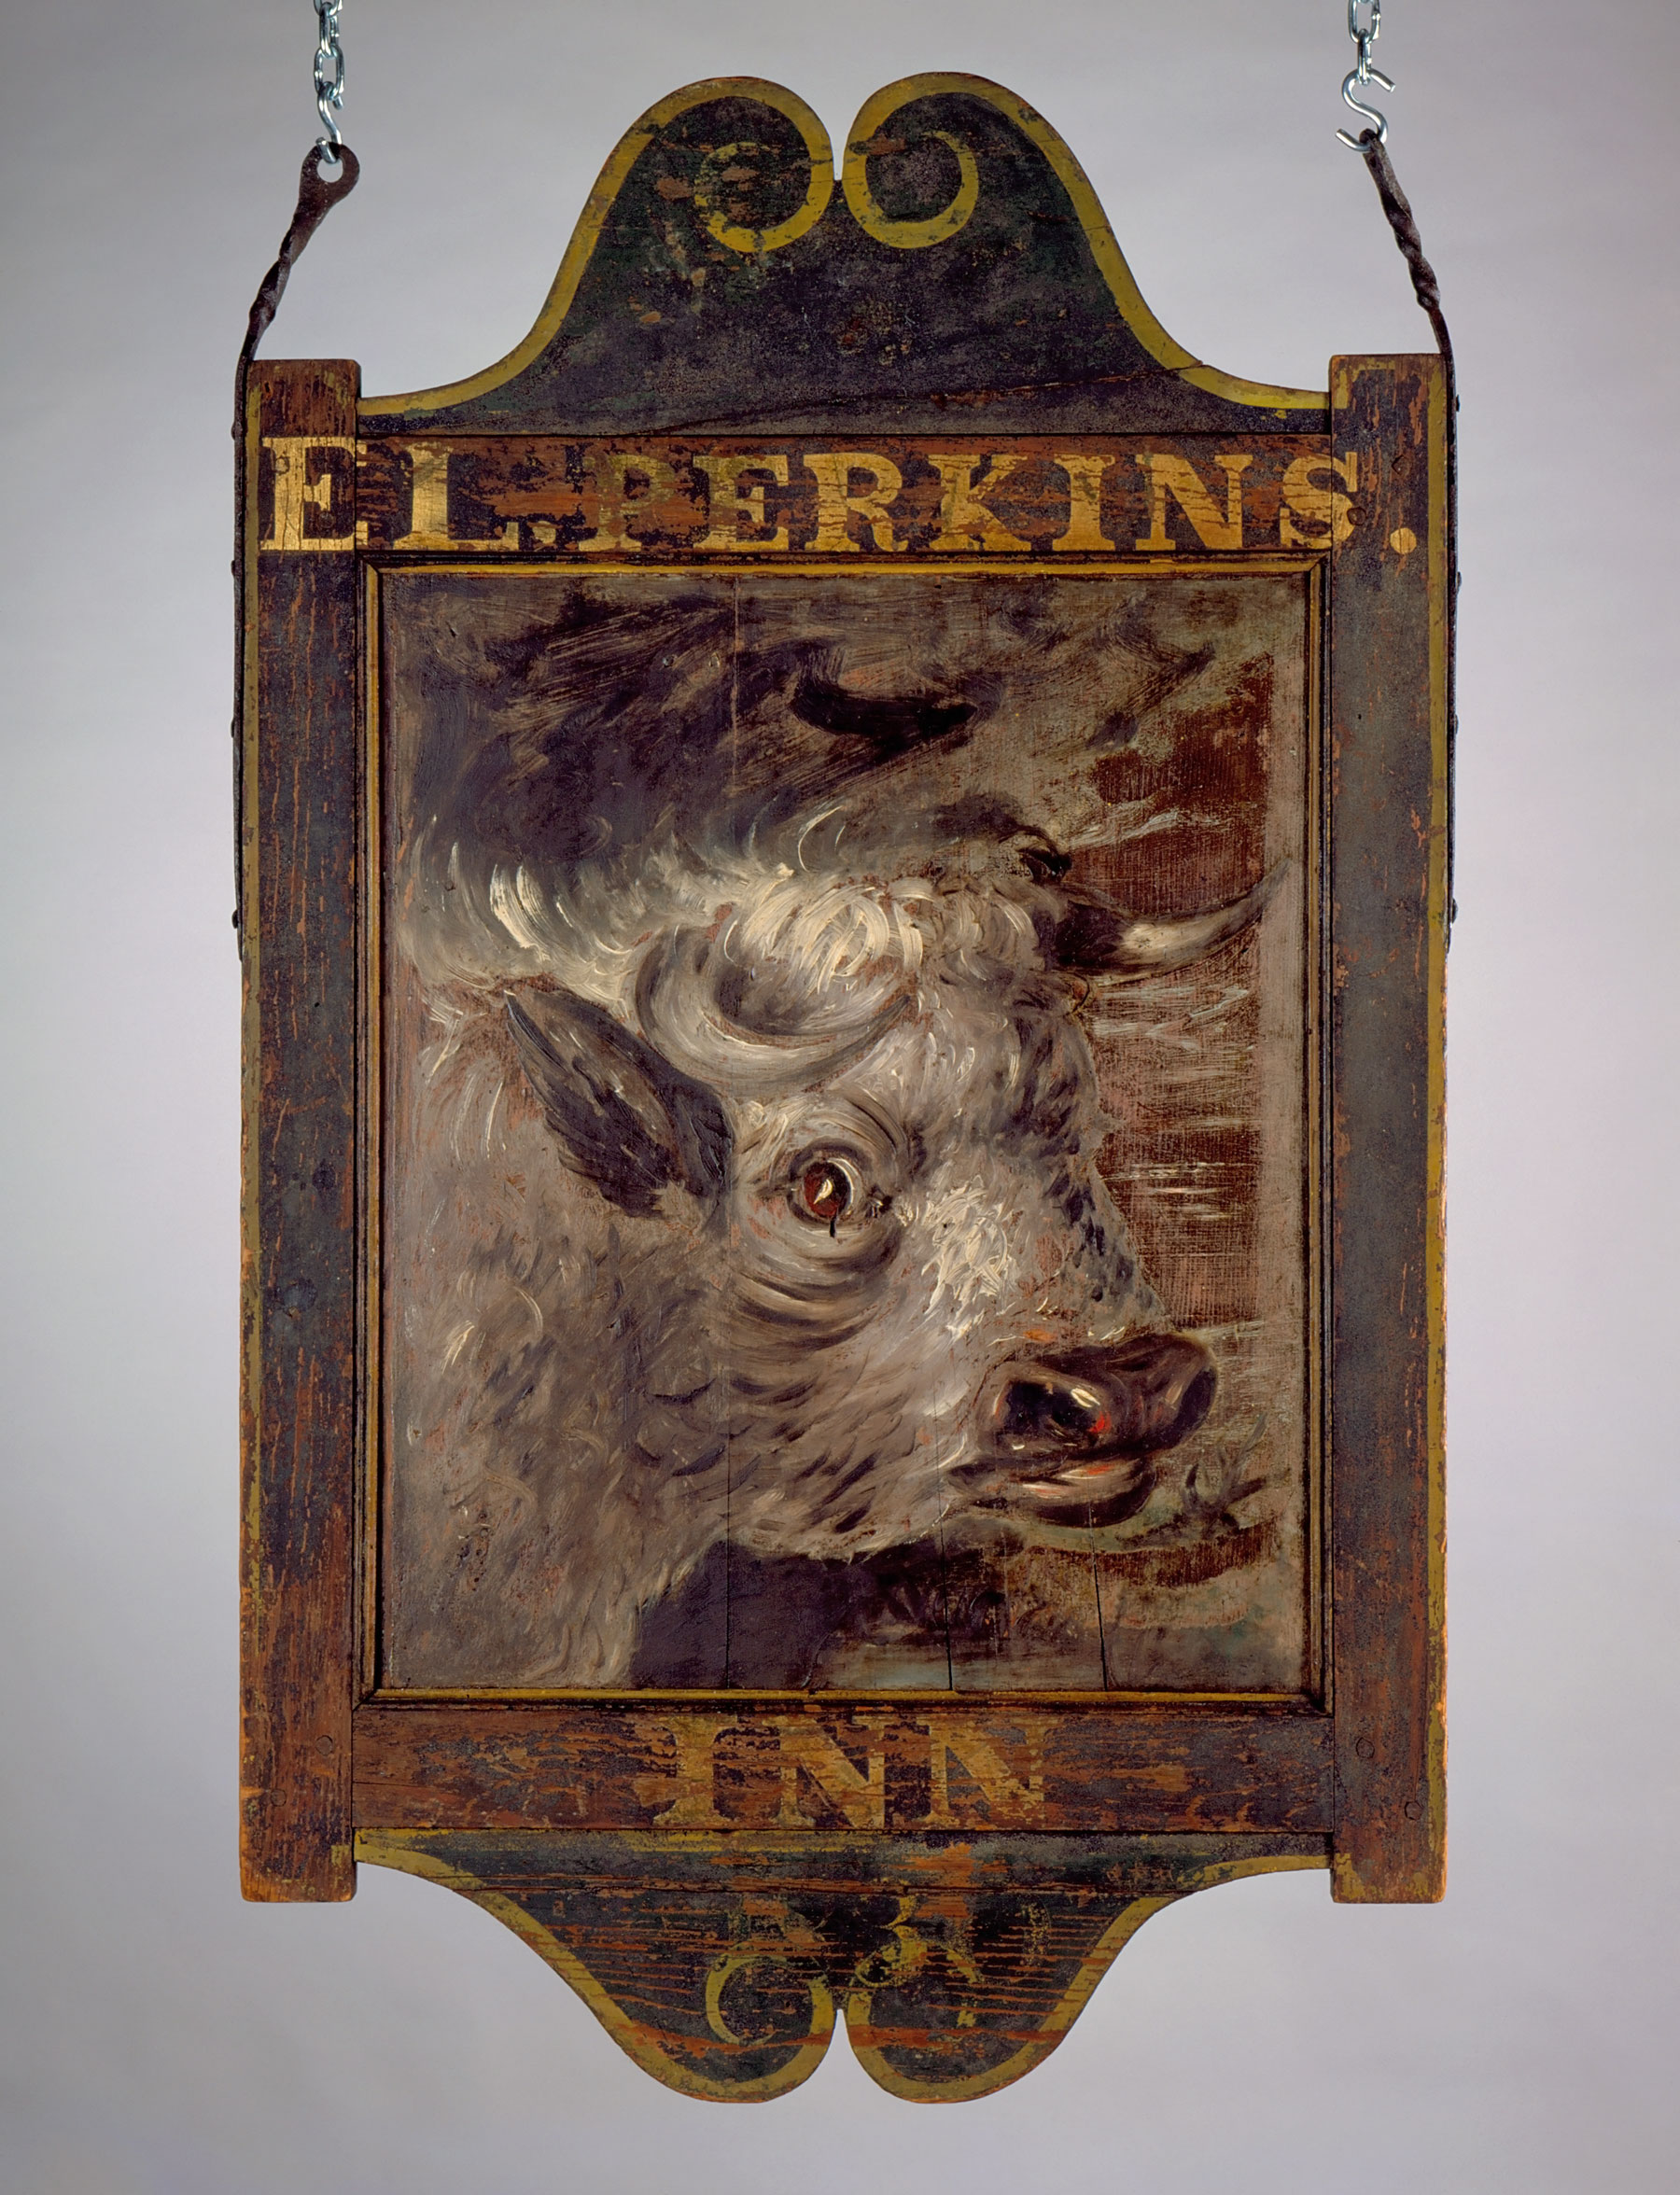 Sign for <em>Perkin's Inn</em>, dated 1830, probably made ca. 1800-1820, West Greenwich, Rhode Island. Paint on pine board, smalt, gold leaf, 47 ¼ x 28 ¼ in. Innholders: Probably Shapley Morgan; Thomas T. Hazard; possibly Elliot Lee Perkins. Maker unknown. Connecticut Historical Society, Hartford, Connecticut. Collection of Morgan B. Brainard, Gift of Mrs. Morgan B. Brainard, 1961.63.39.